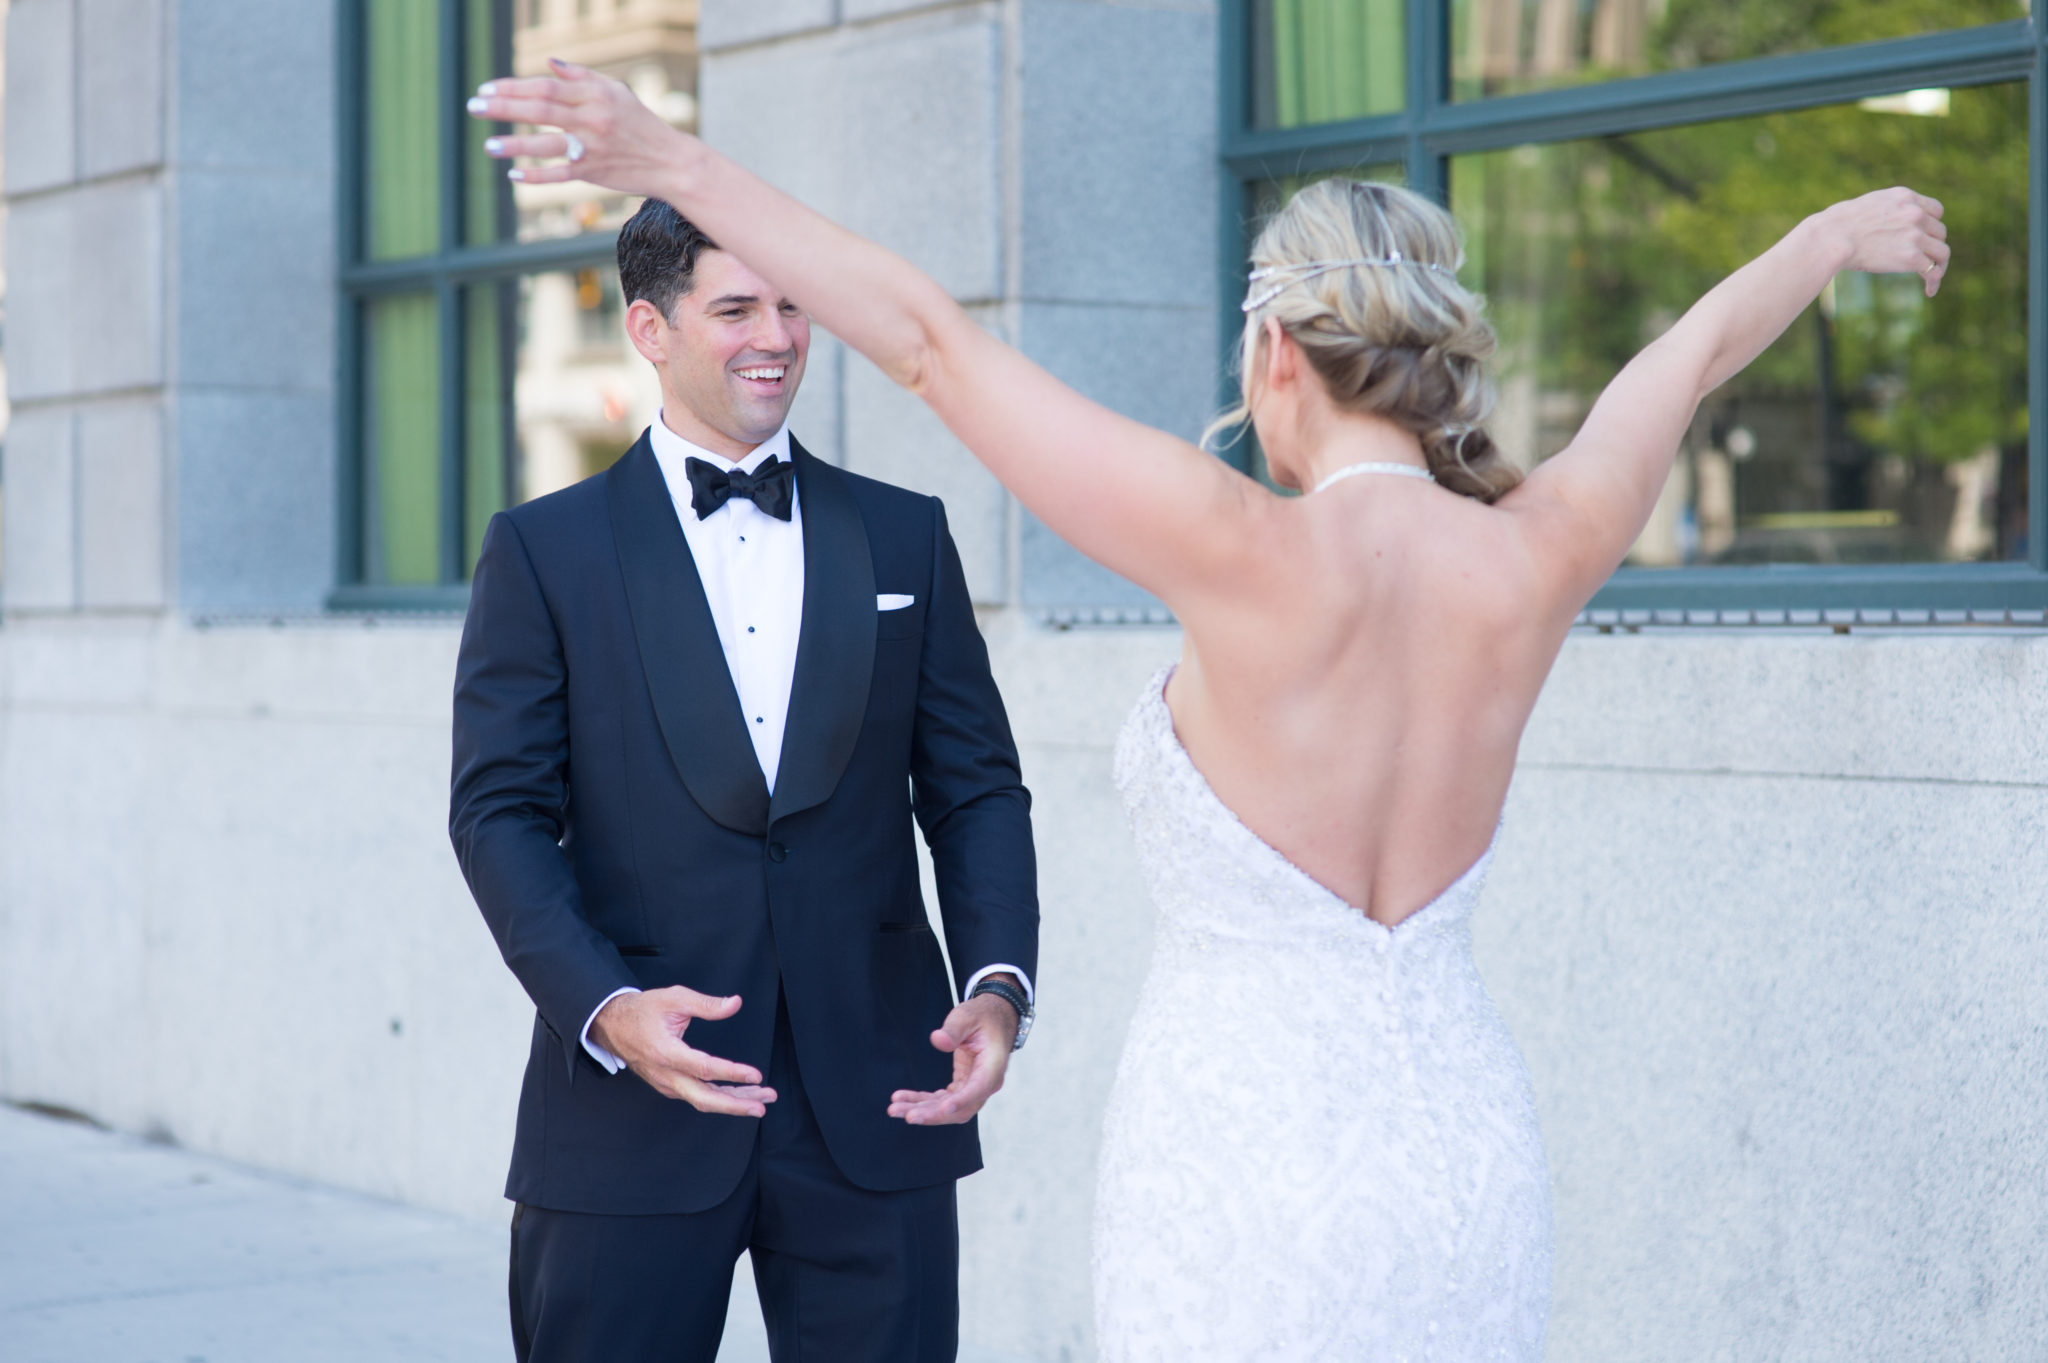 Greek wedding photography salt lake city utah Ryan hender films best utah wedding videographers